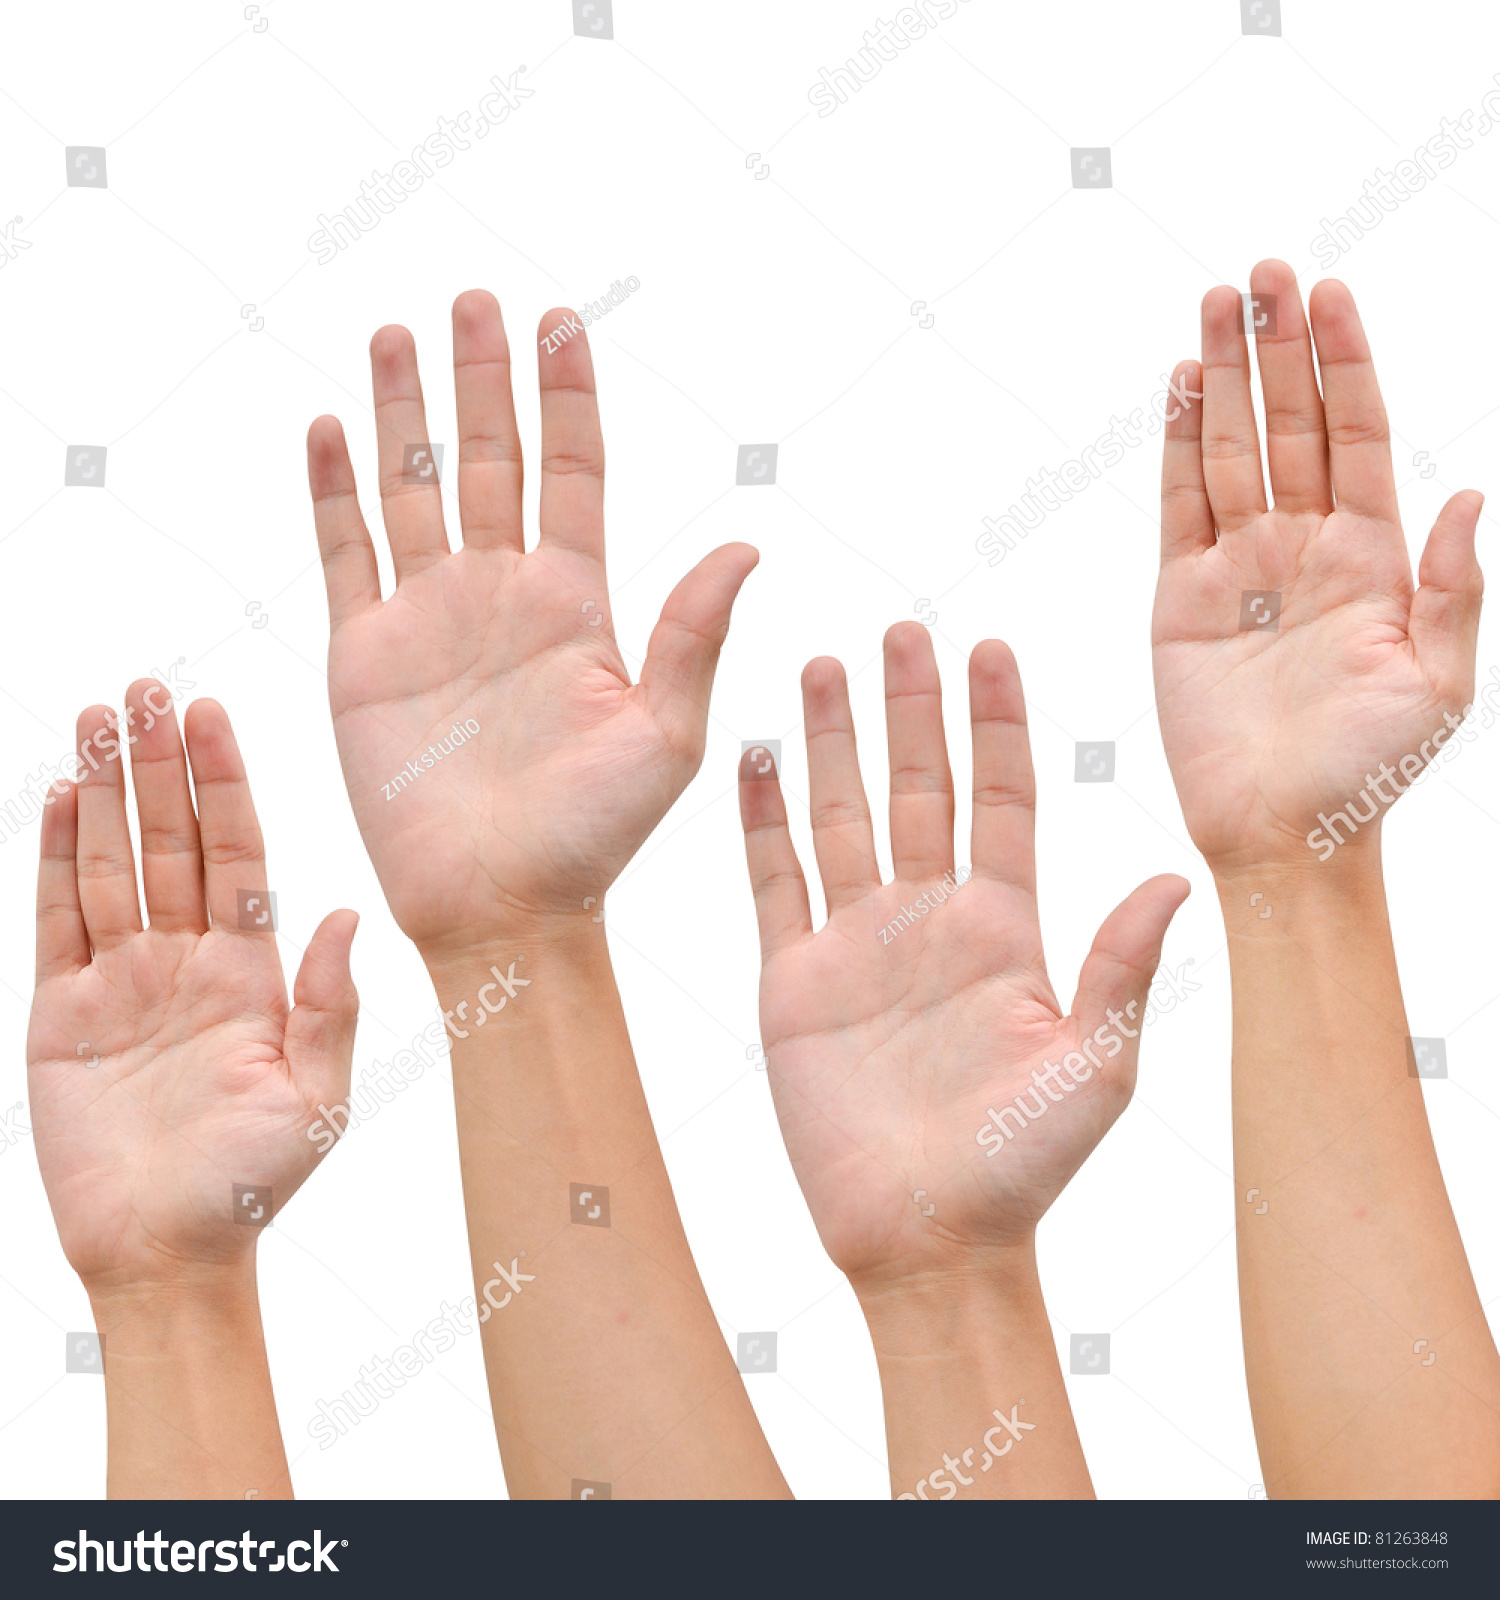 Hand Raise Up On White Background ,Business Concept Stock Photo 81263848 : Shutterstock